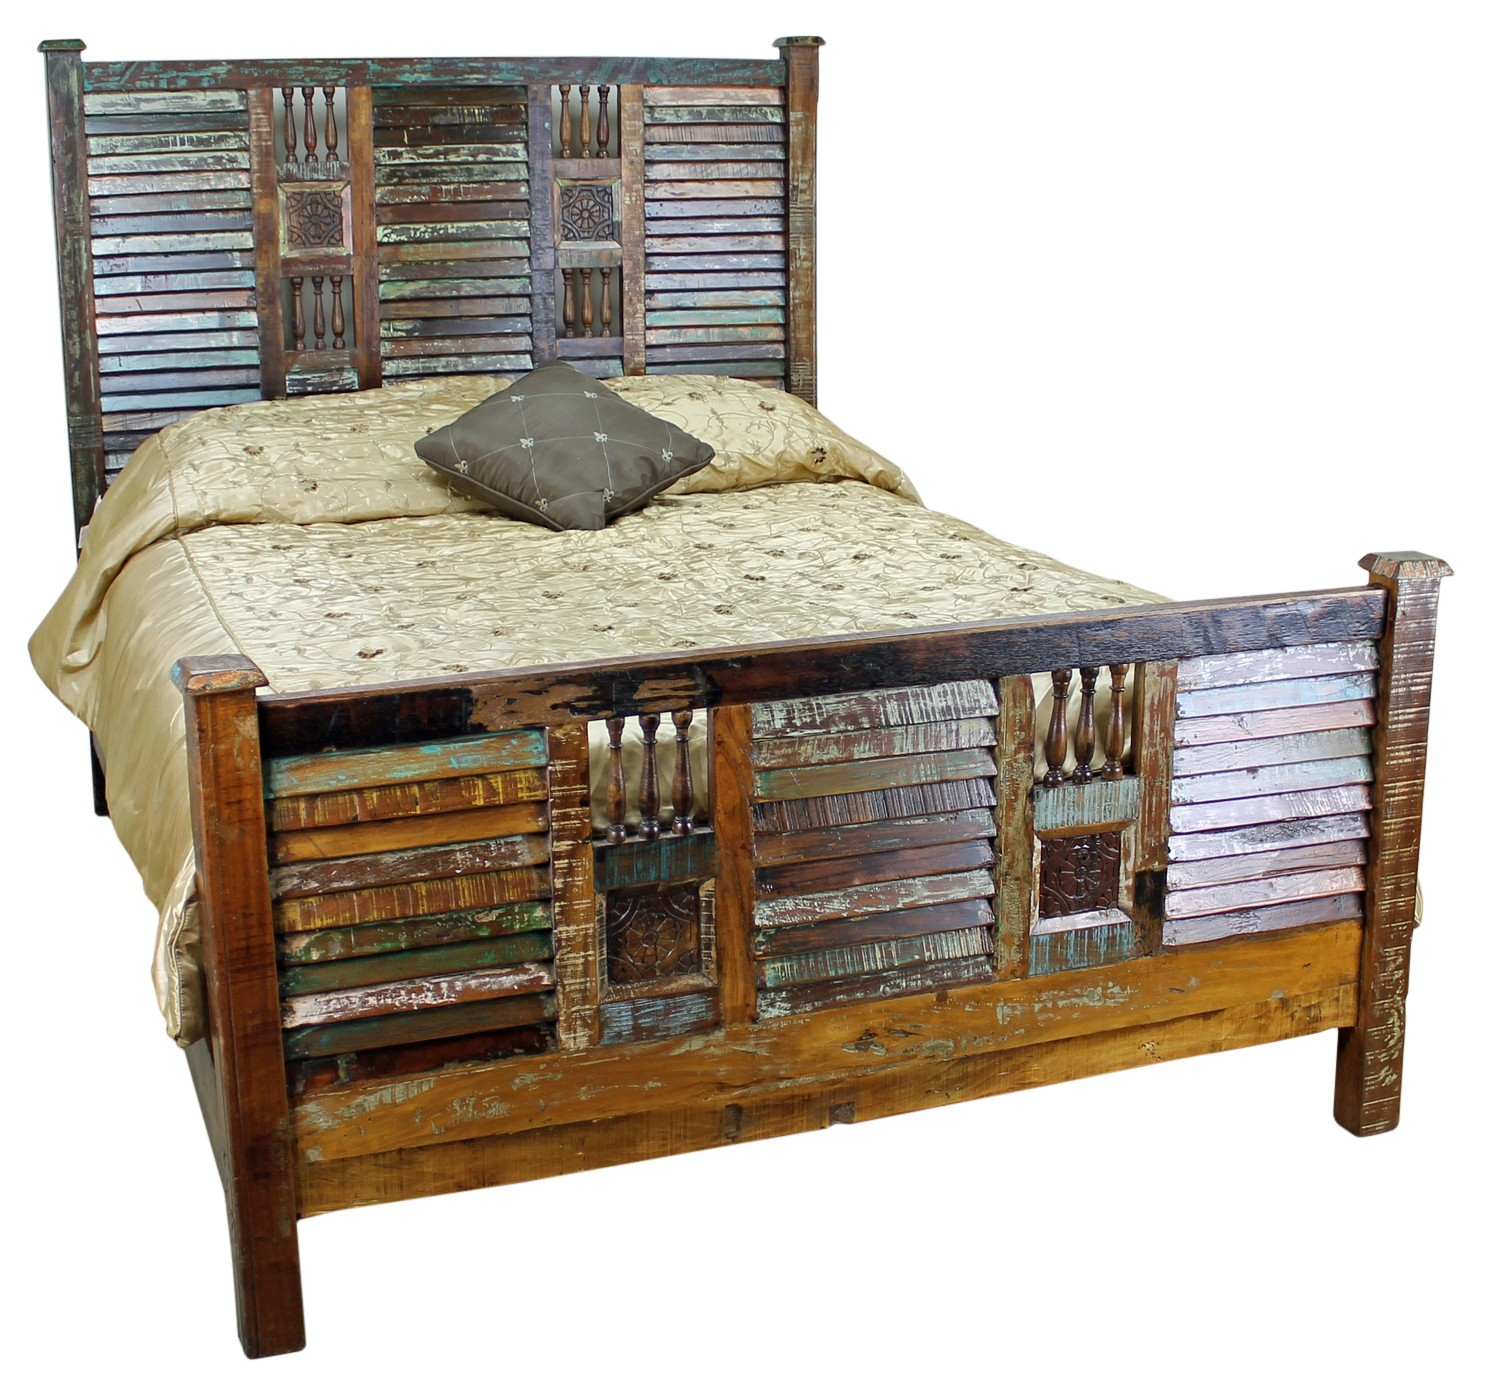 Permalink to Old Wooden Bed Frames